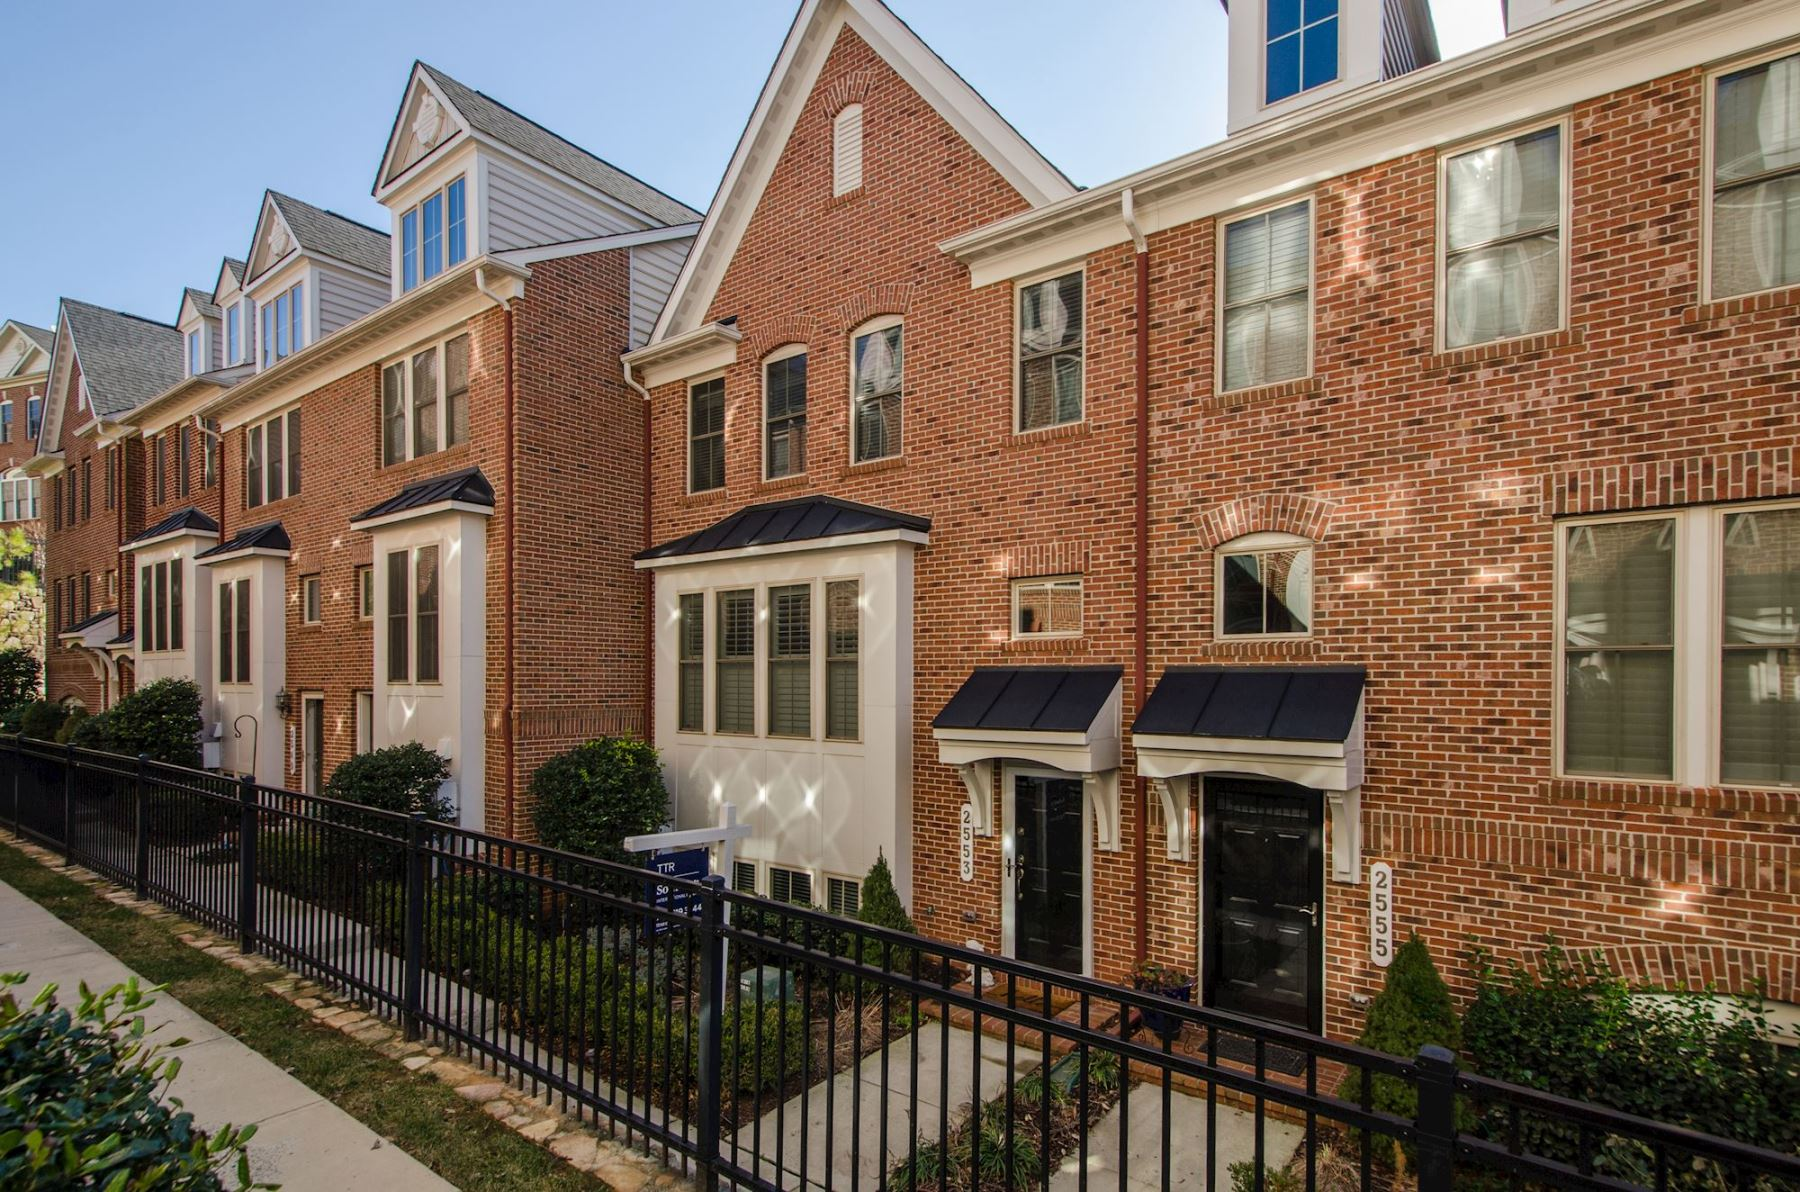 Townhouse for Sale at 2553 Kenmore Court, Arlington 2553 Kenmore Ct Arlington, Virginia 22206 United States